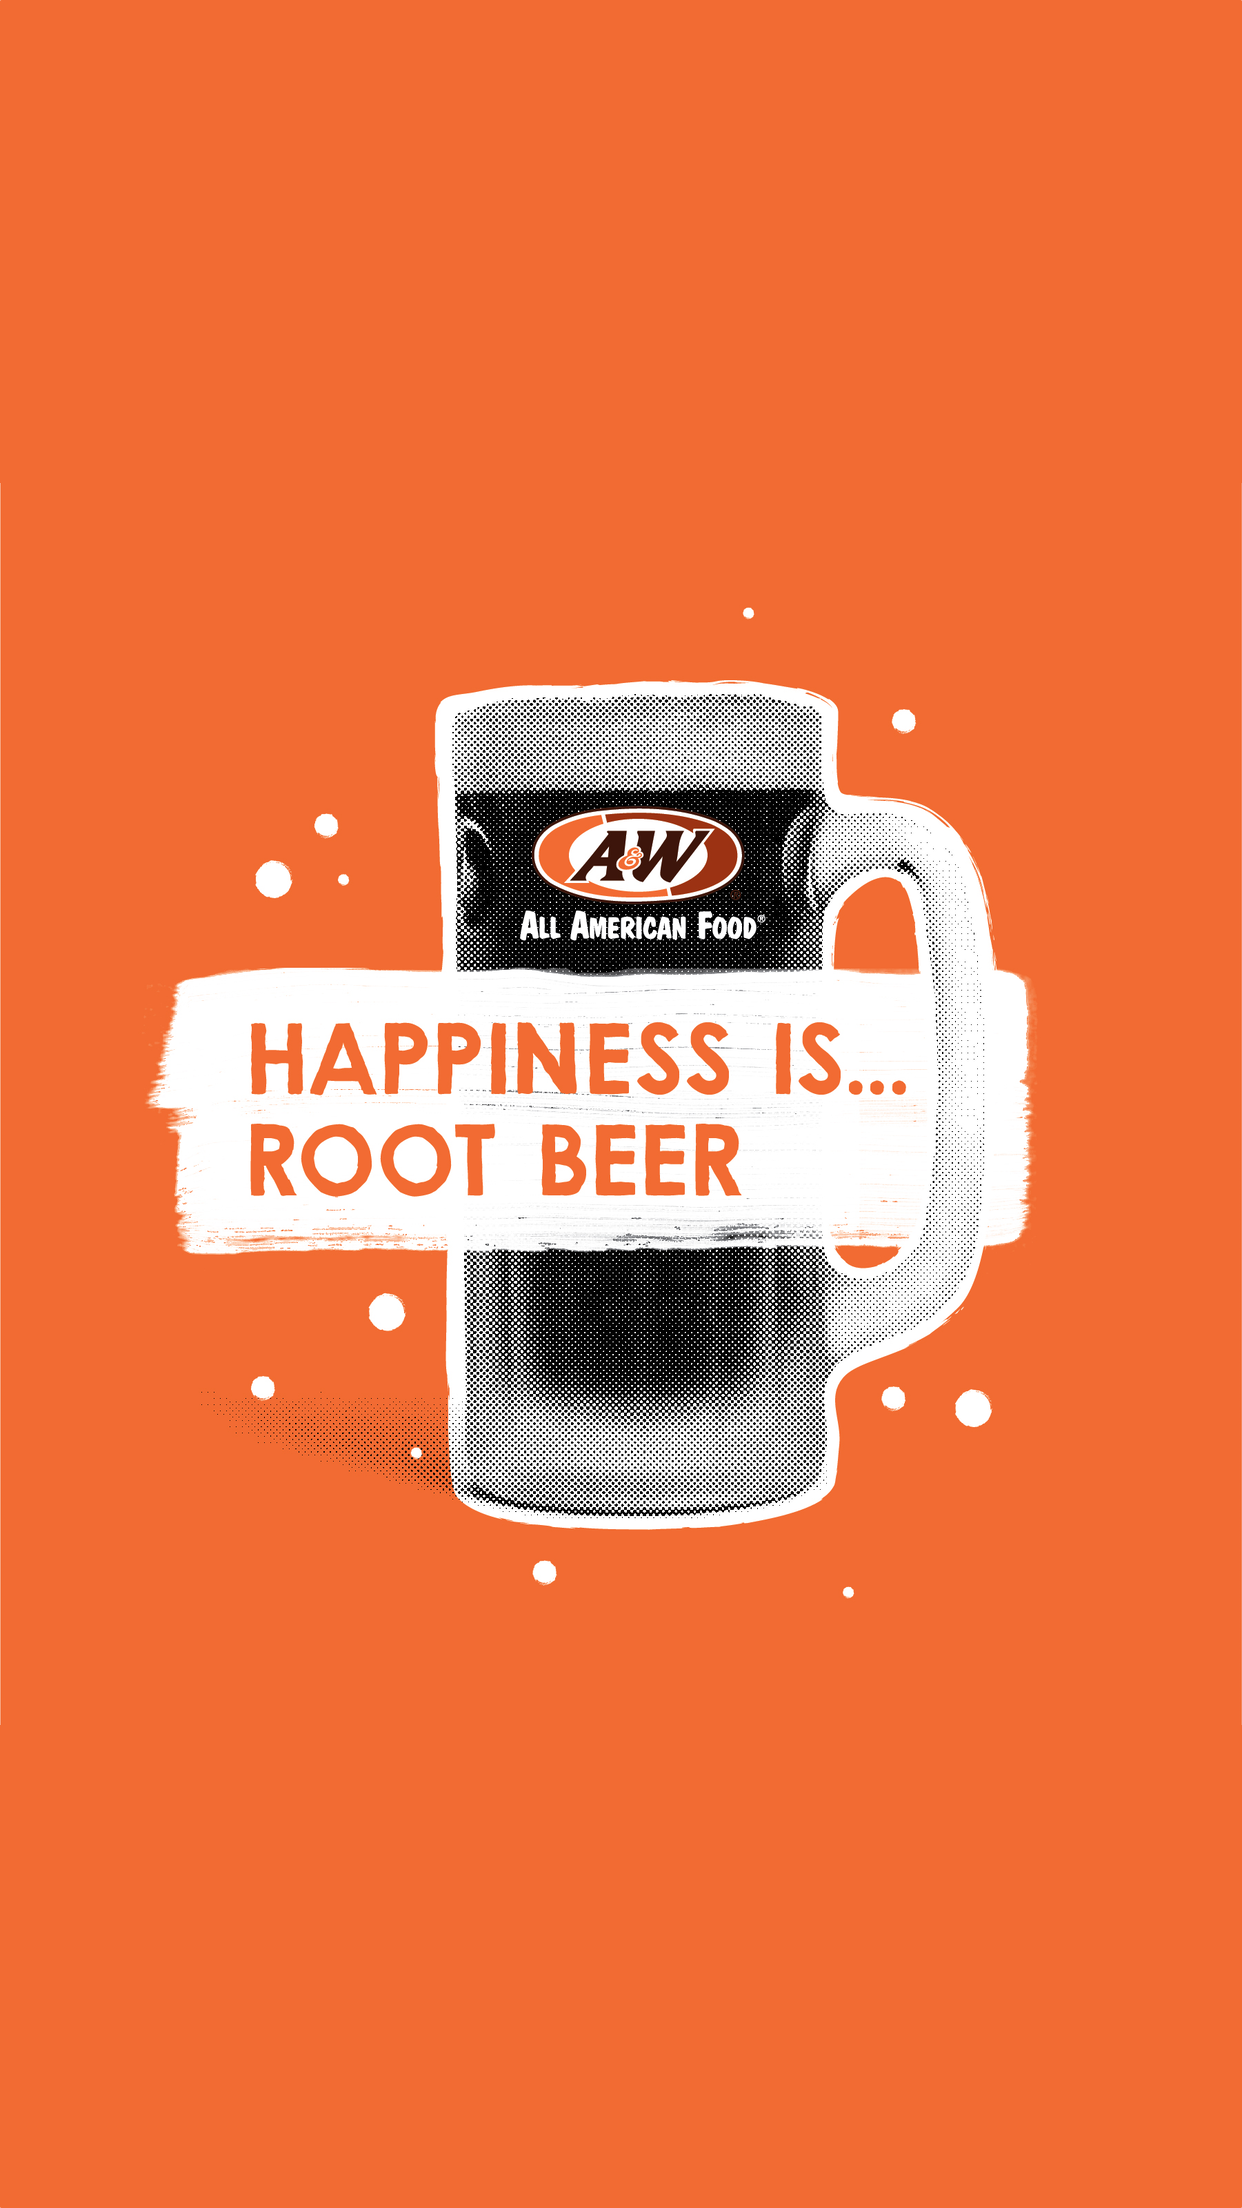 Orange phone wallpaper with A&W Root Beer mug and 'Happiness is Root Beer' text